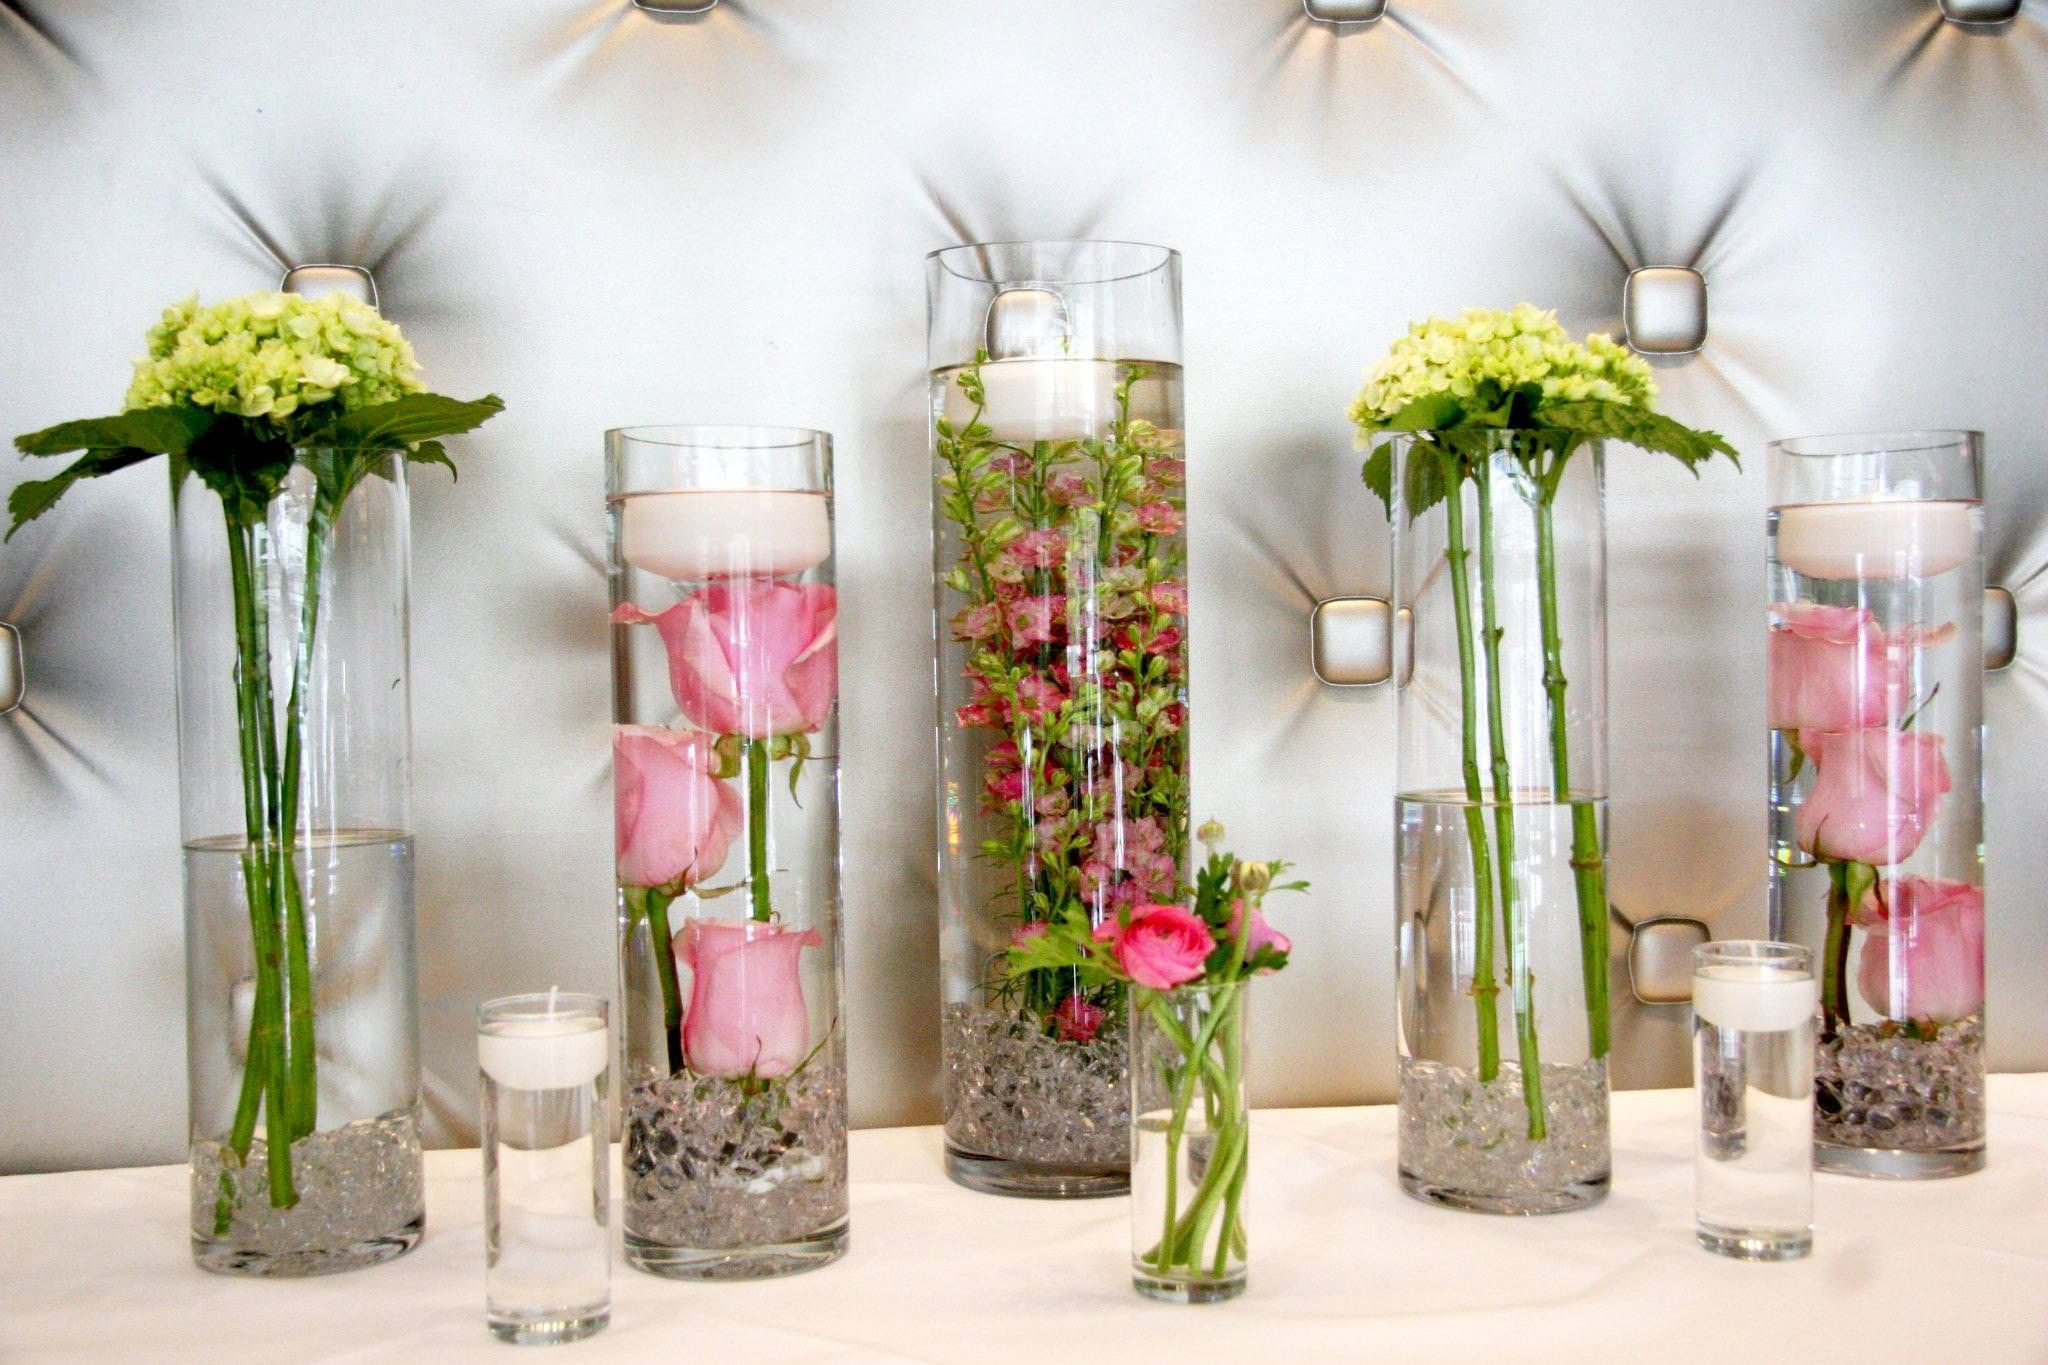 Tall Floor Vase Decoration Ideas Of 50 Tall Vase Fillers the Weekly World Regarding Decorating Ideas for Tall Vases Fresh Floor Vase Filler Ideas